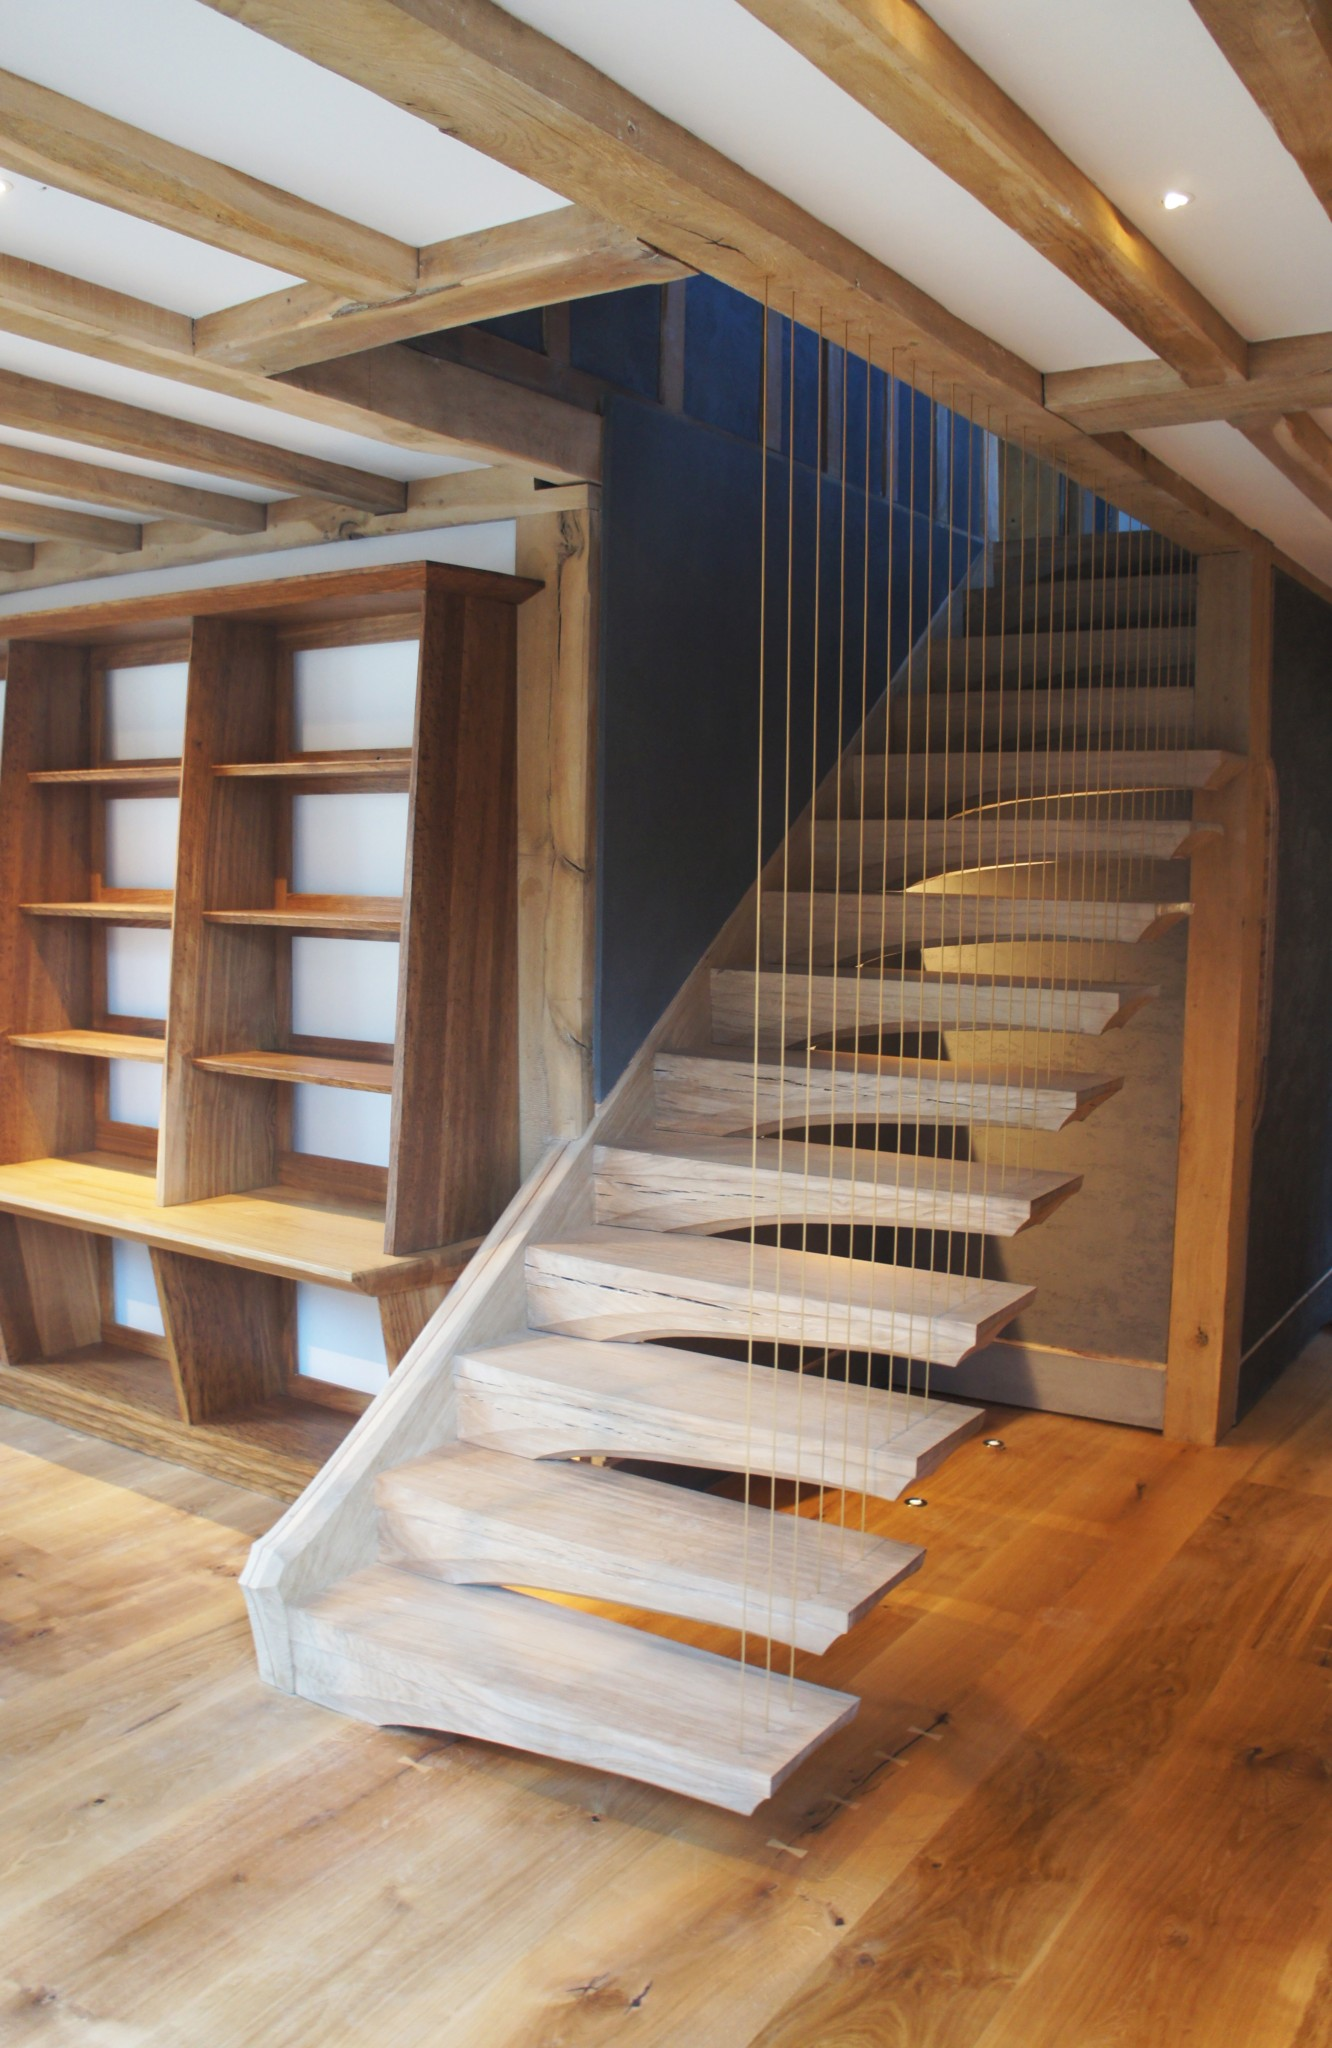 Cantilever Staircase - S A Spooner